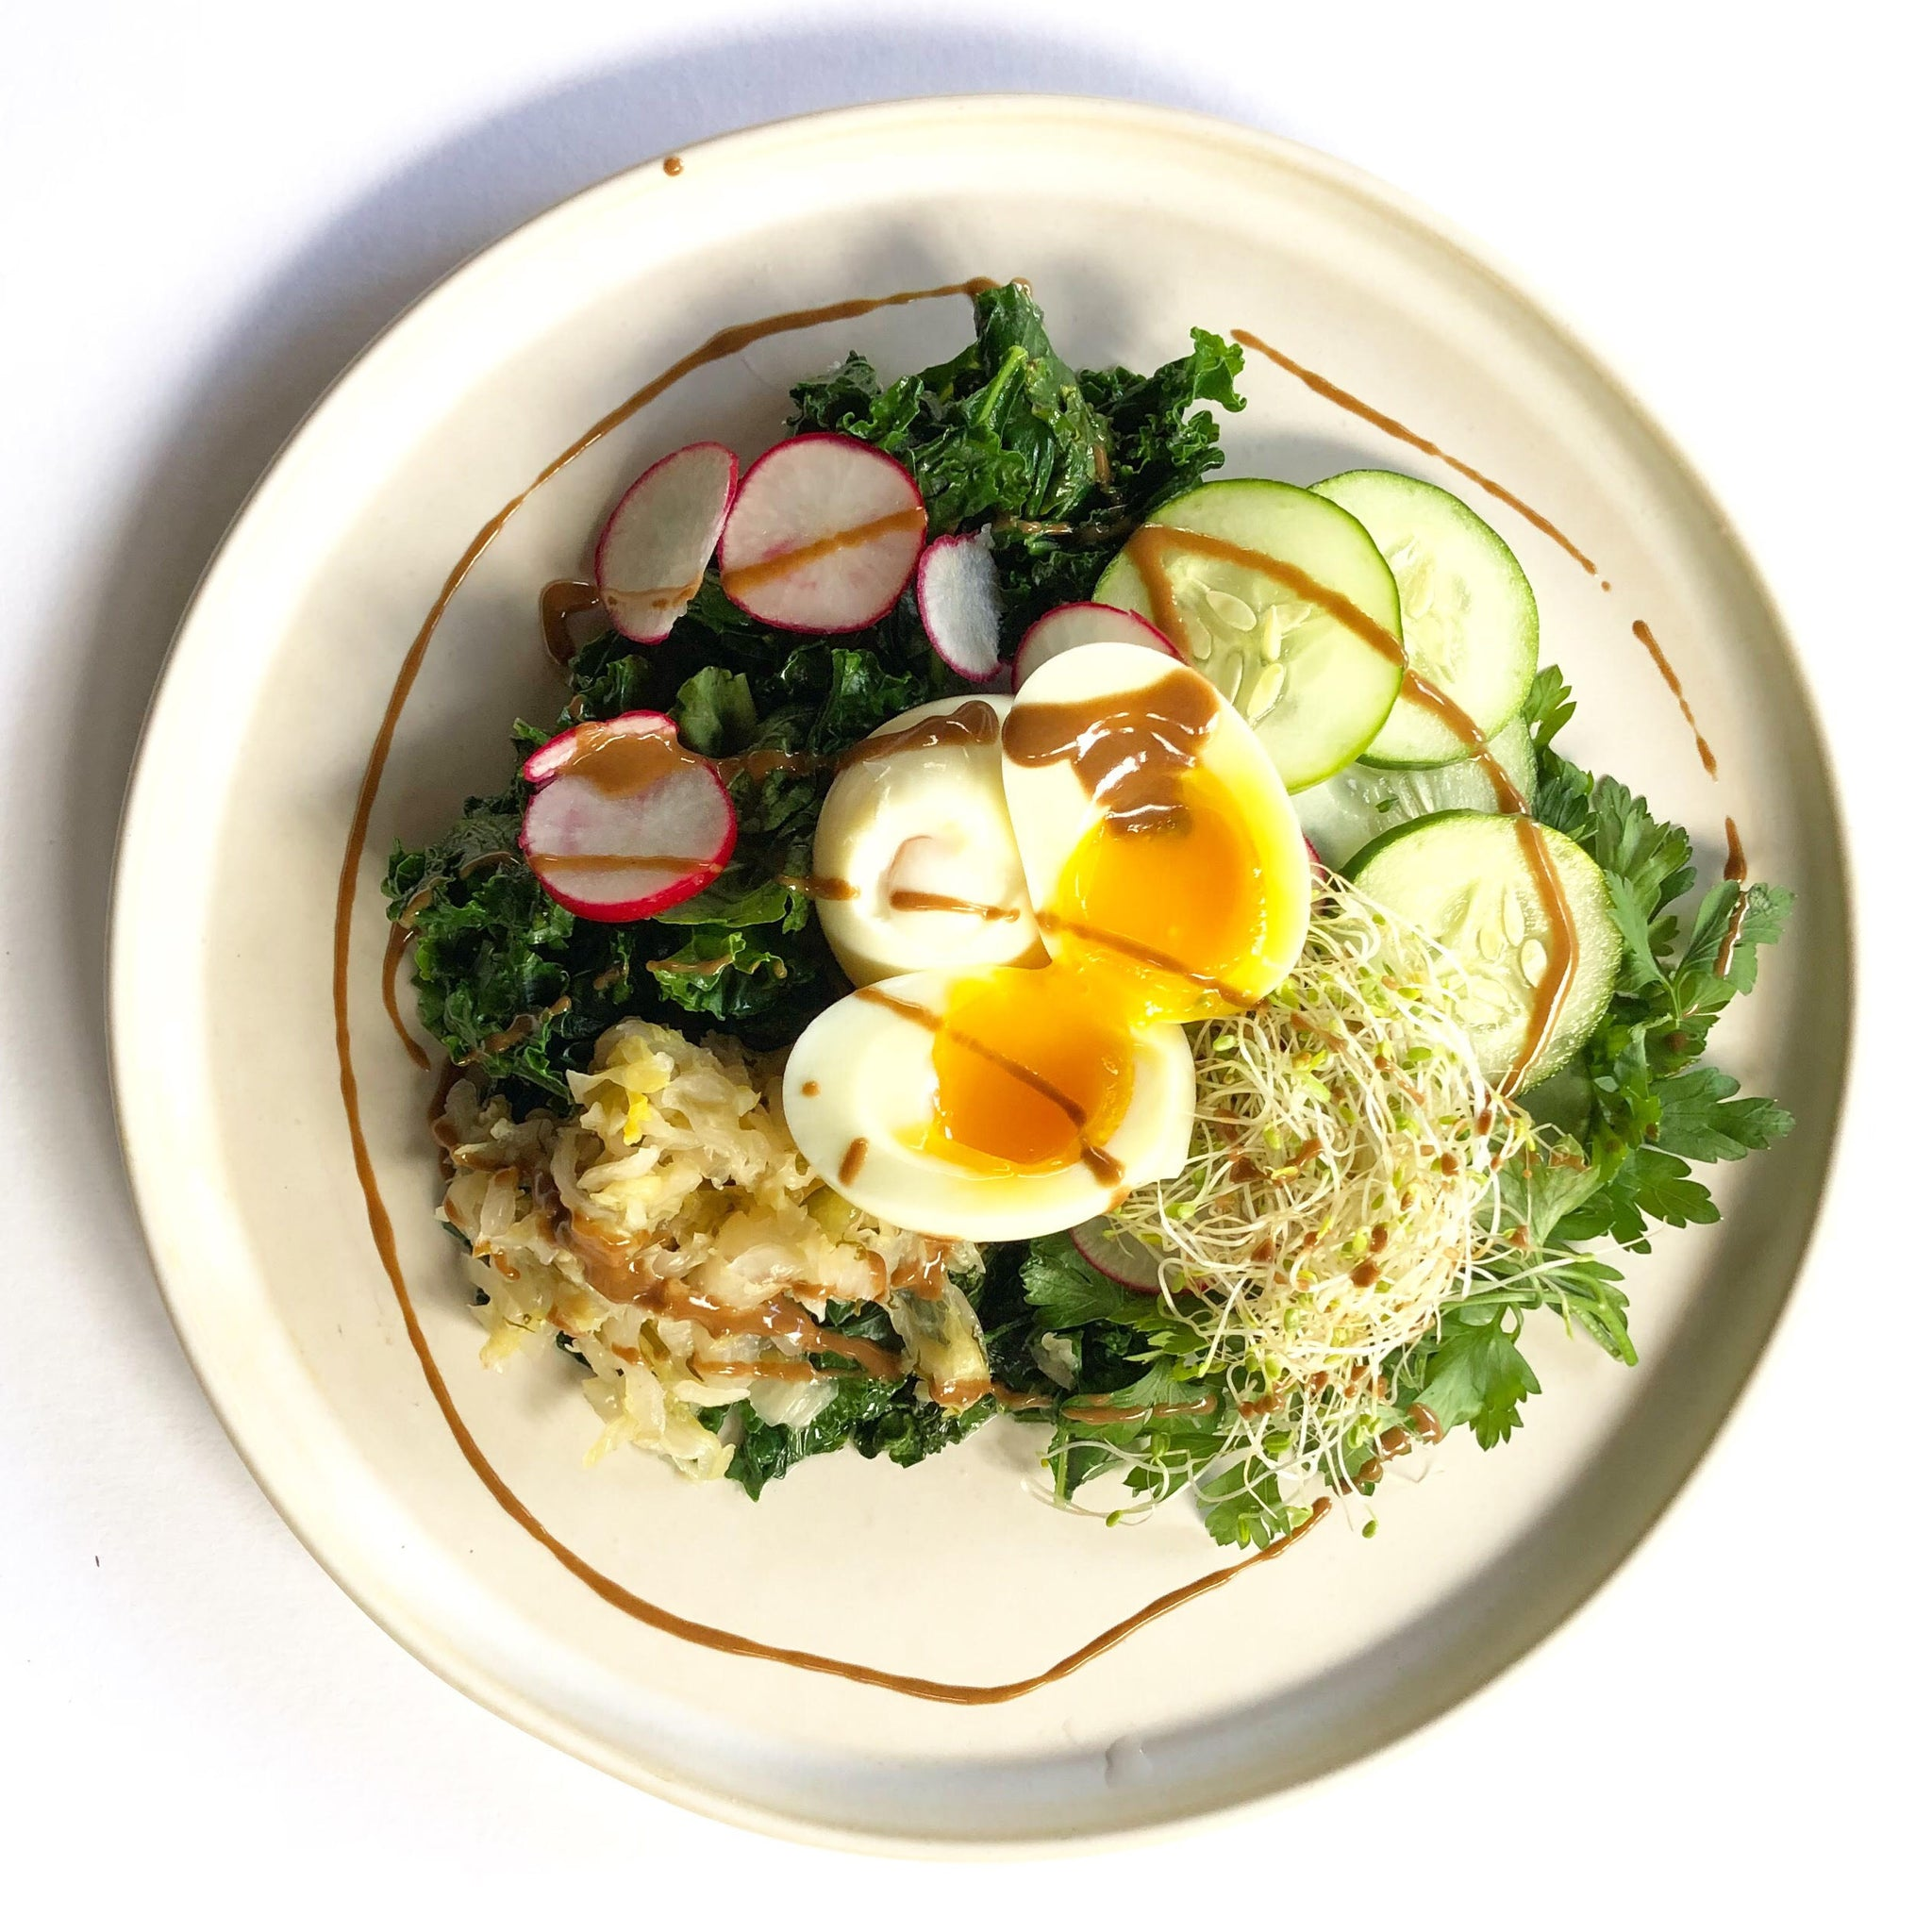 Coconut + butter kale with sauced and soft boiled eggs (Keto)